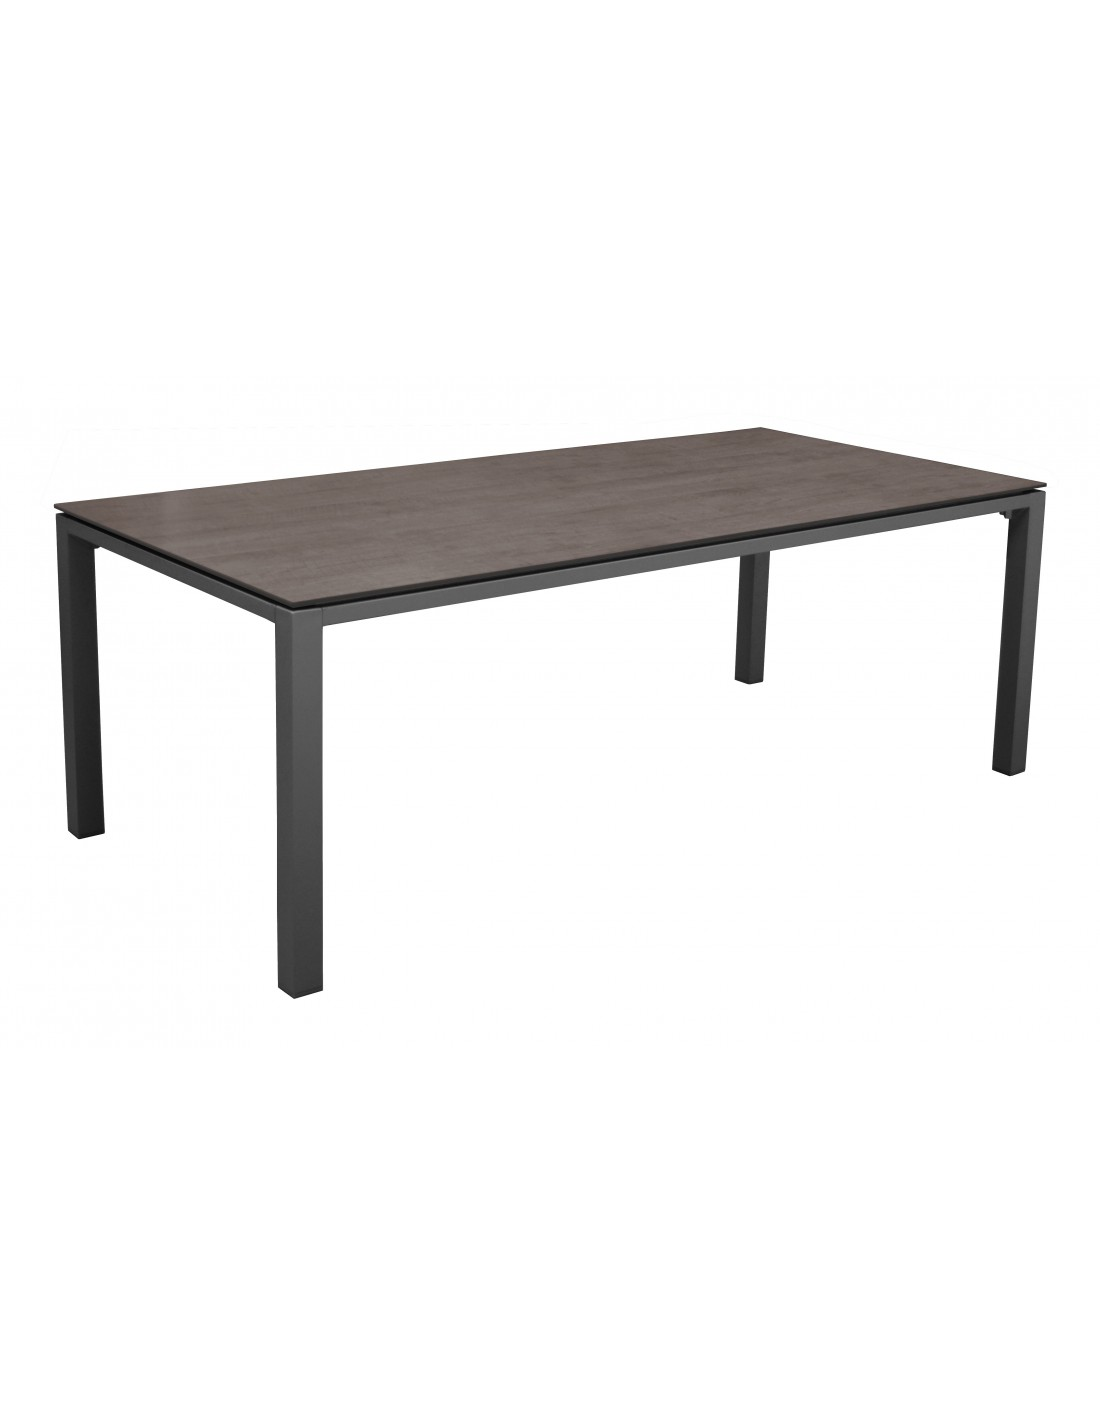 table de jardin stoneo 210 cm en aluminium et plateau hpl proloisirs. Black Bedroom Furniture Sets. Home Design Ideas